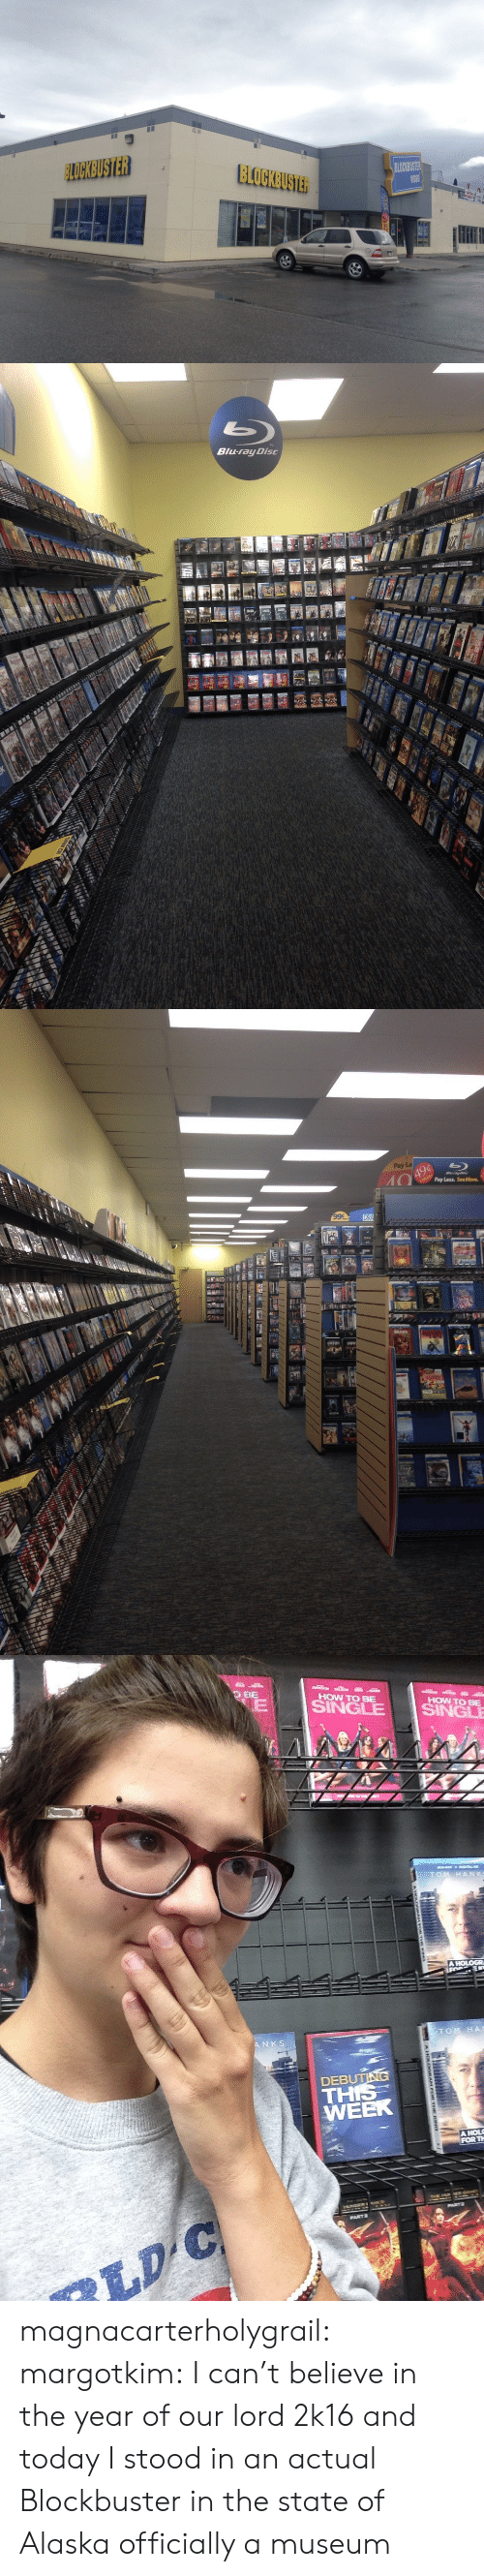 2k16: BLOCKBUSTER   Blu-ray Disc   Pay Le  Pay Less. SeeMore.   HOW TO BE  HOW TO BE  DEBU  TH  WEER  FORT magnacarterholygrail: margotkim:  I can't believe in the year of our lord 2k16 and today I stood in an actual Blockbuster in the state of Alaska  officially a museum